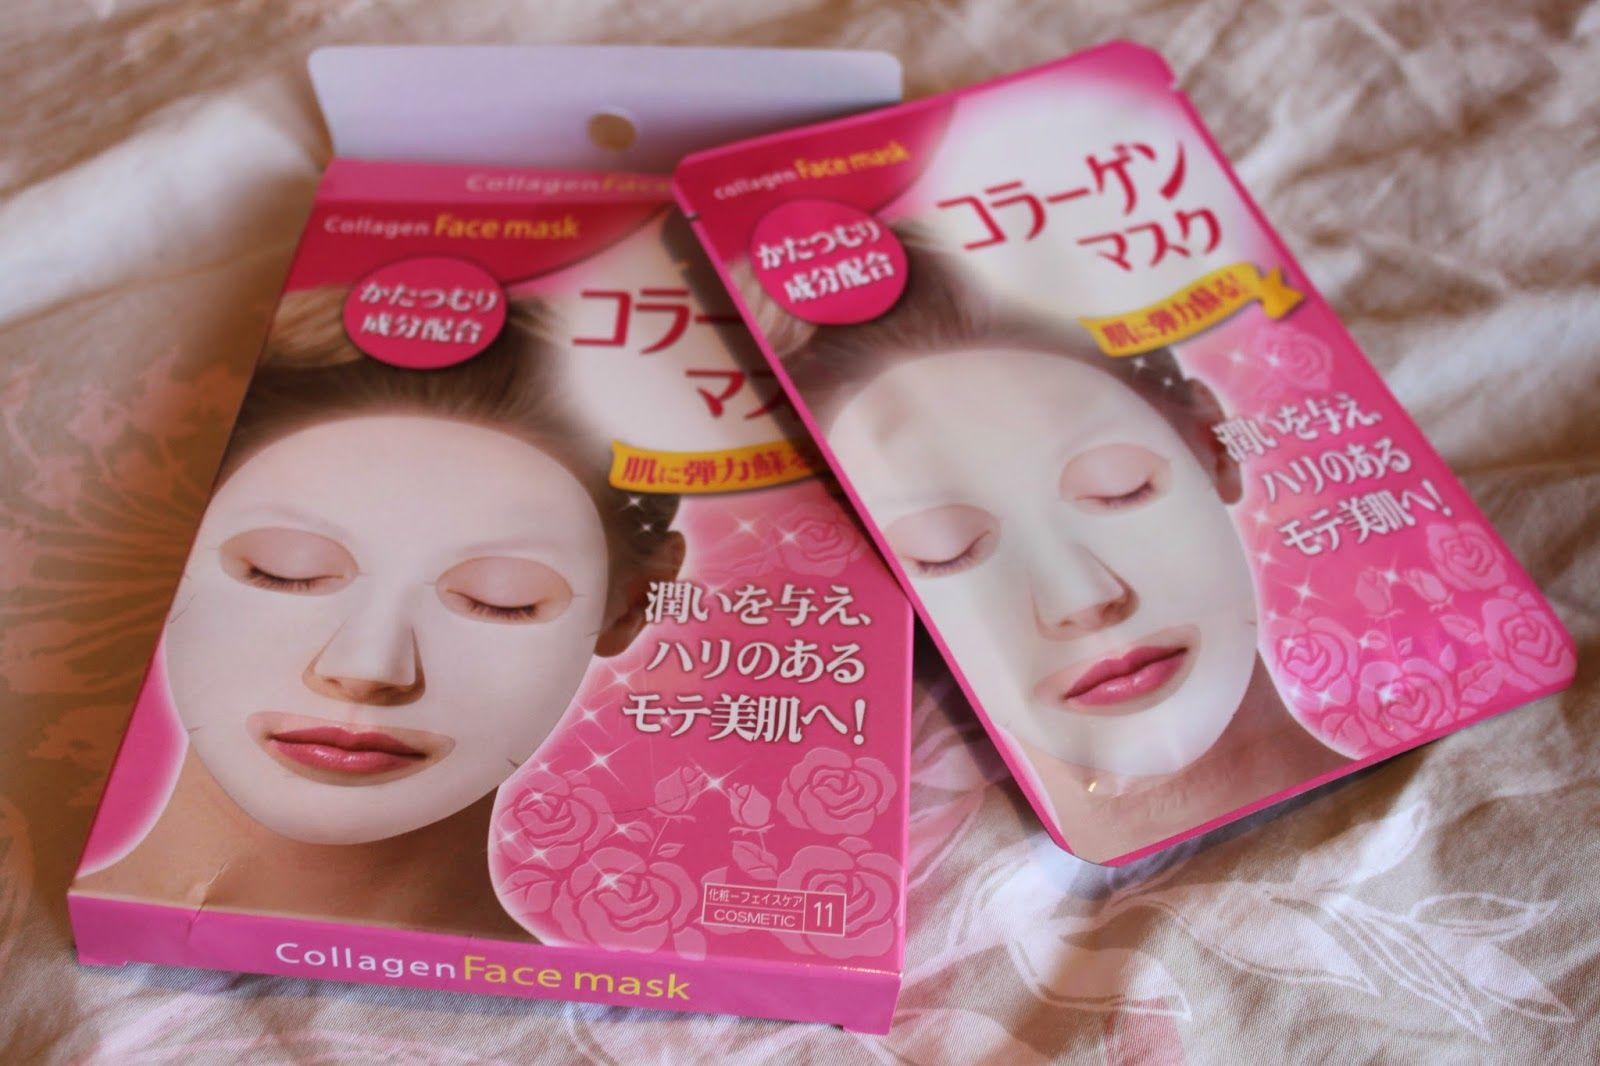 Bought these Japanese sheet masks from Daiso as well as a